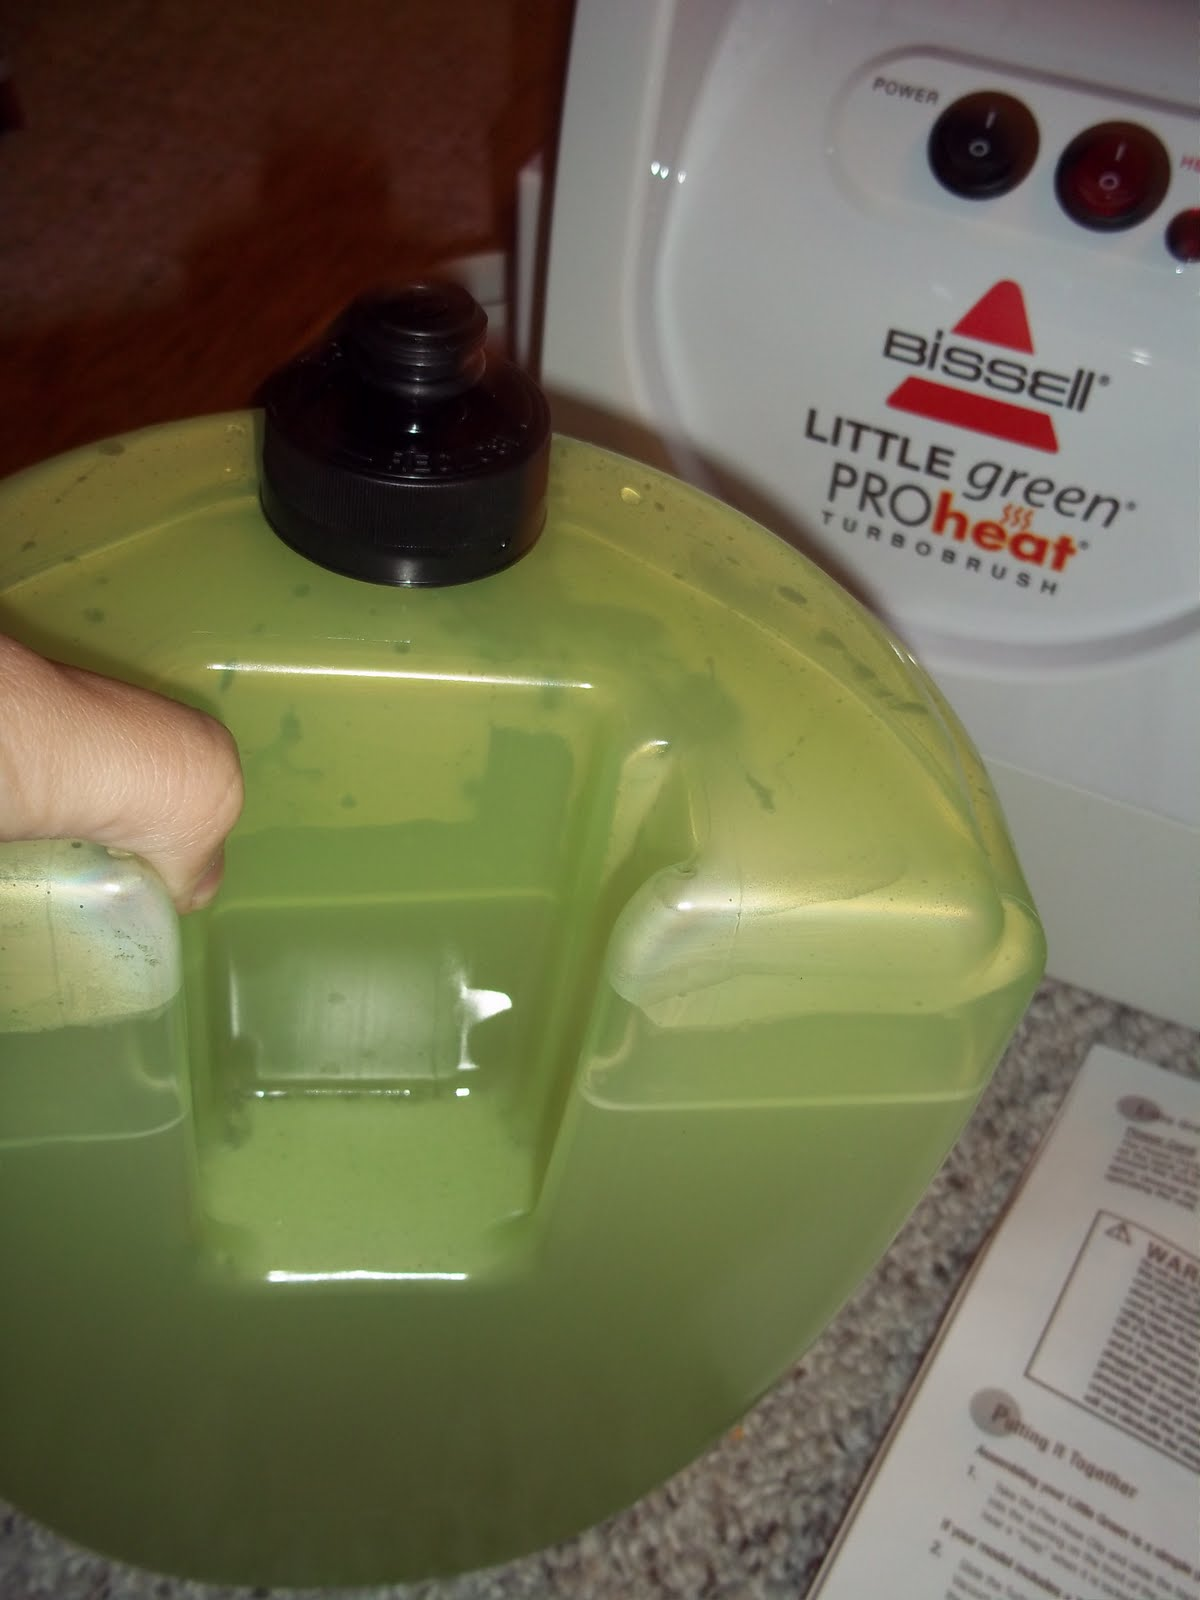 Bissell Little Green Proheat Carpet Cleaner Review